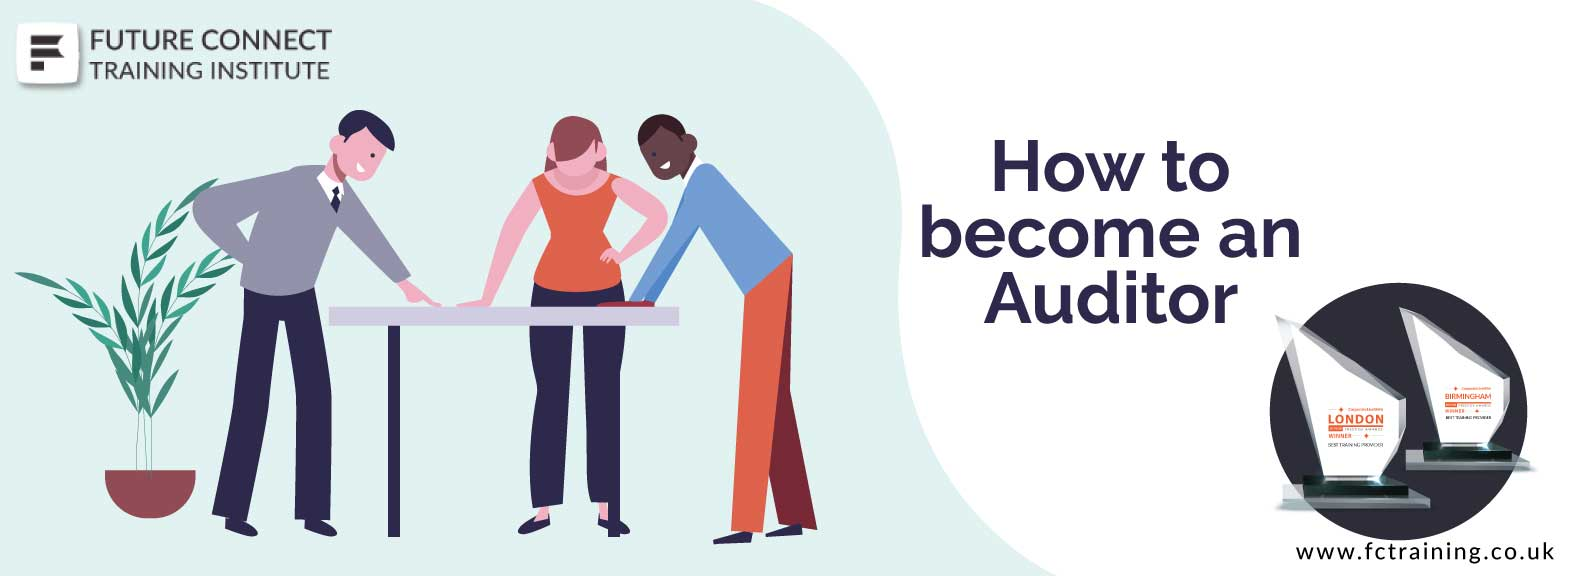 How to become an auditor